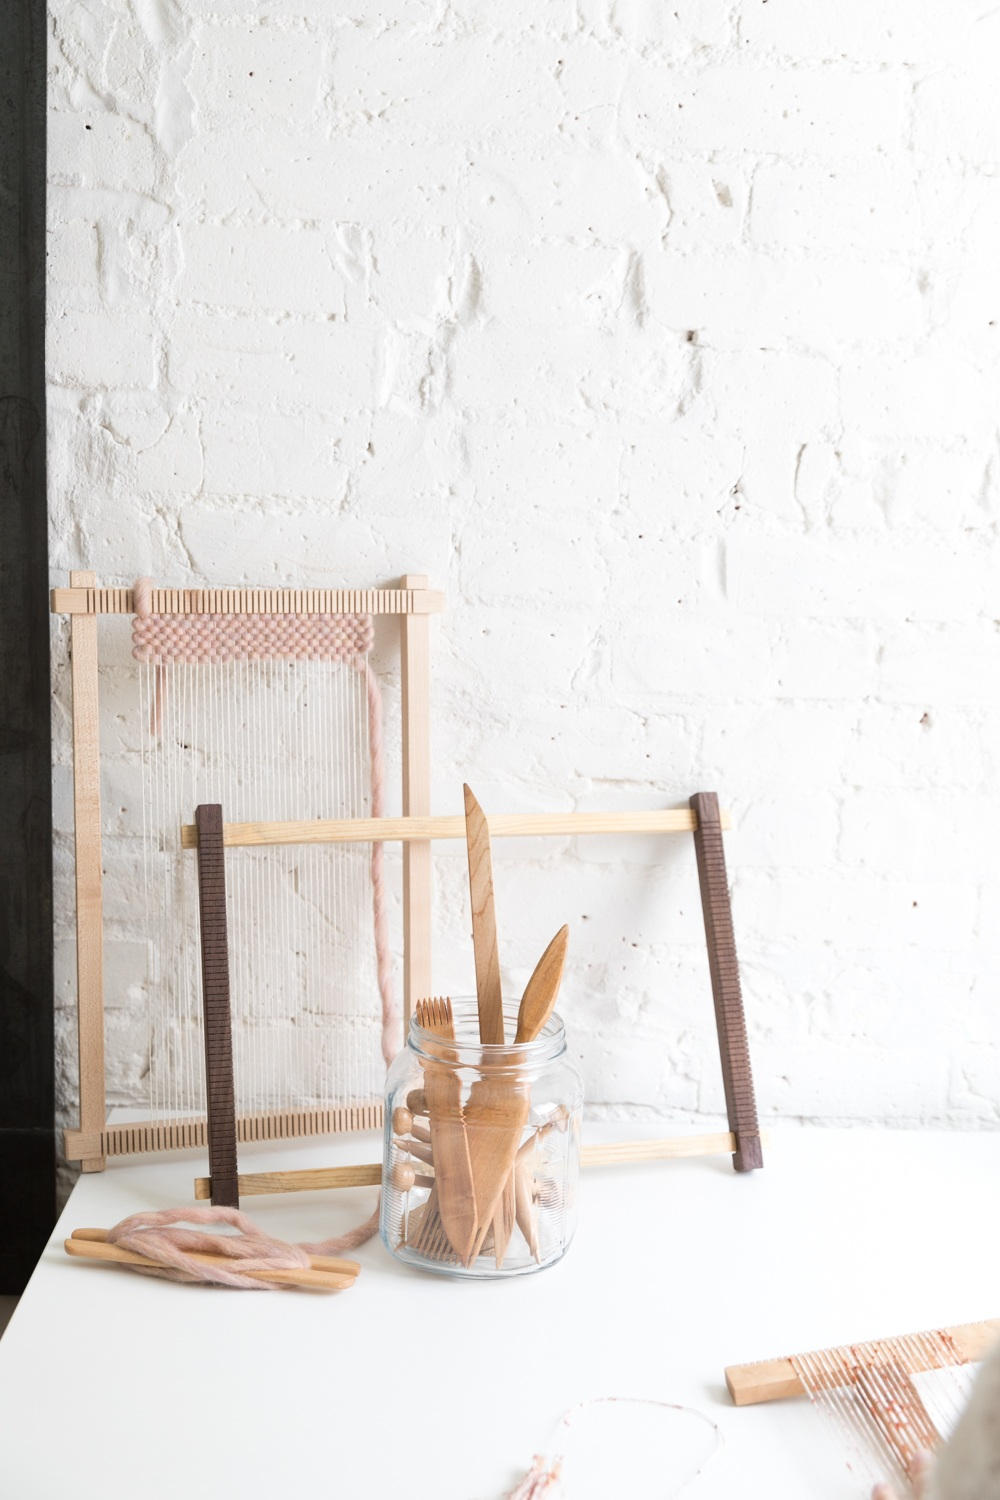 Jimena-Peck-Denver-Lifestyle-Editorial-Photographer-Sweet-Paul-Magazine-Flax-and-Twine-Looms-Tools